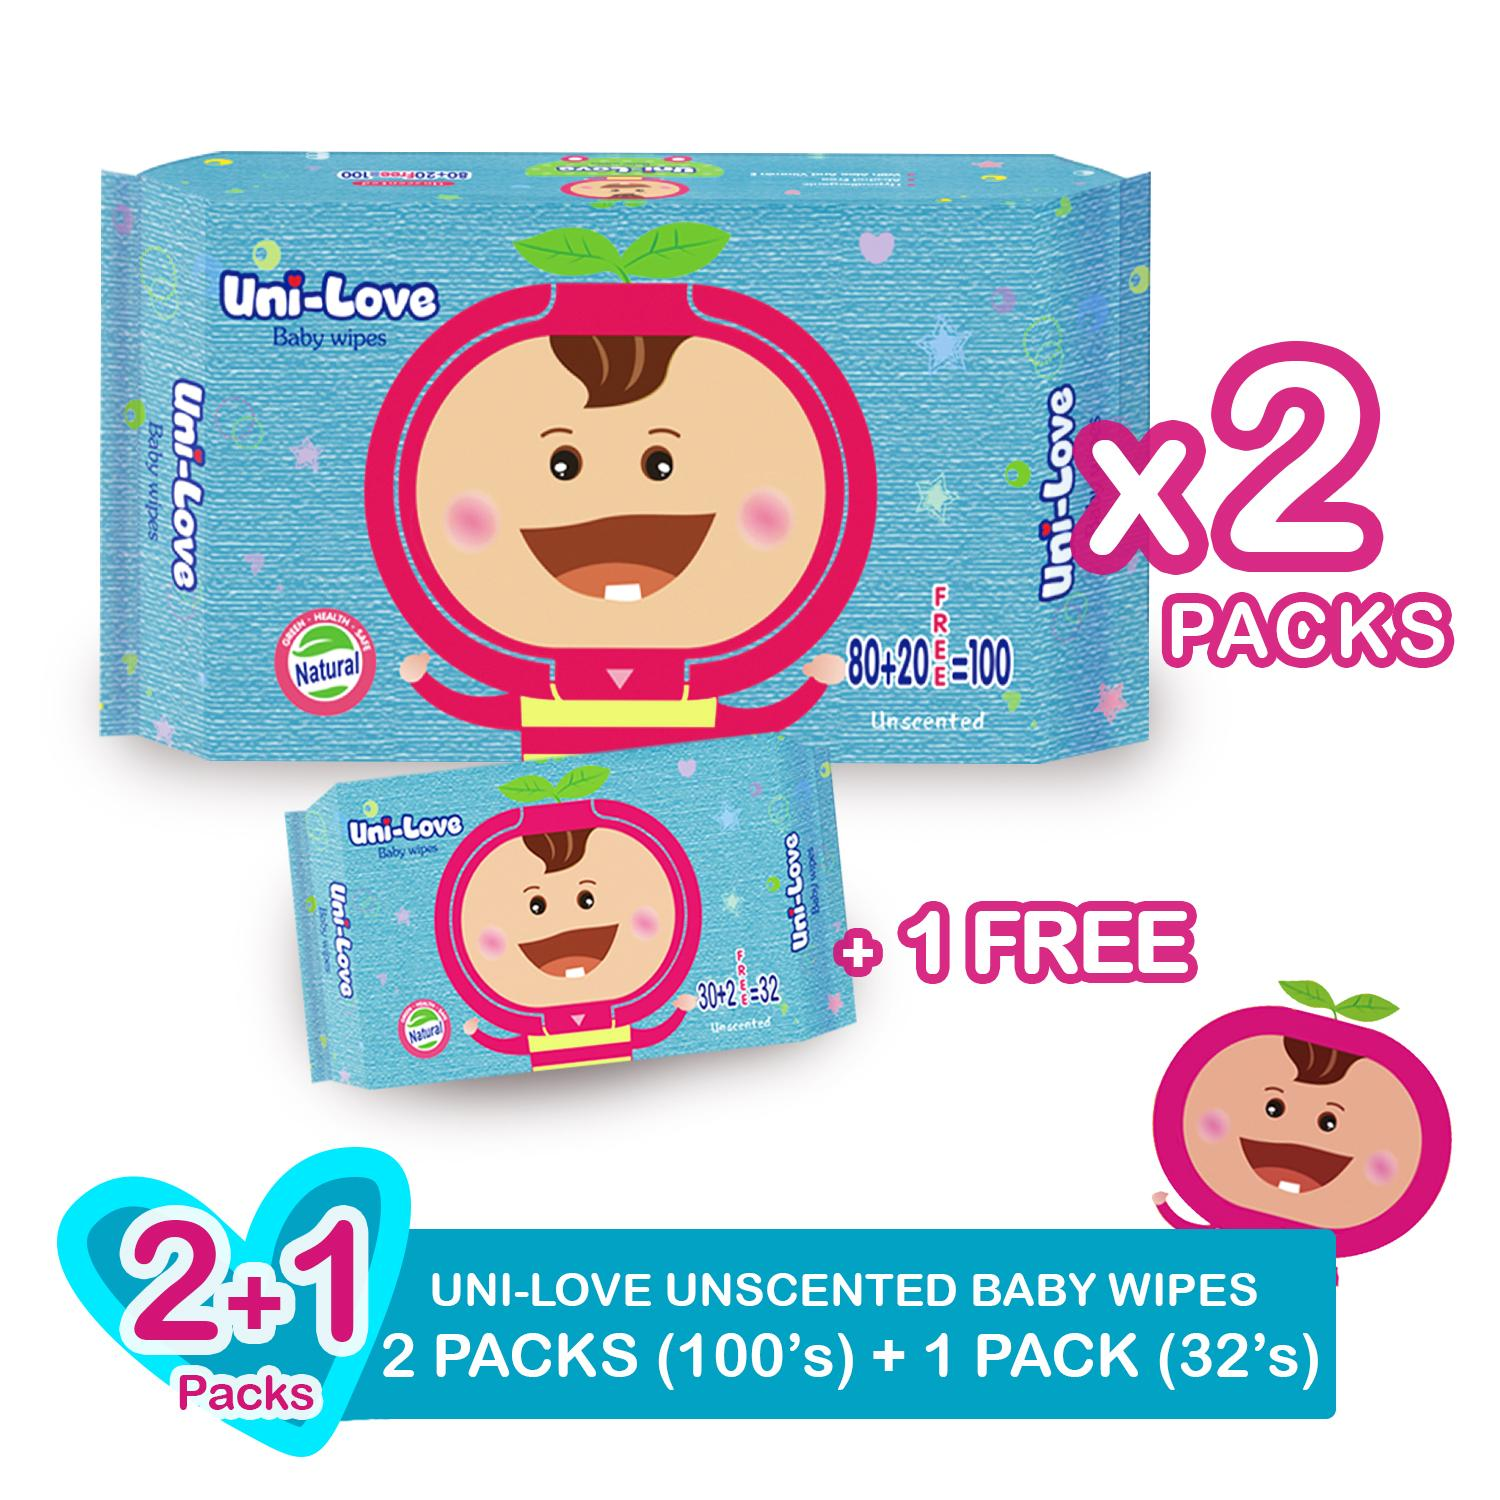 Buy Sell Cheapest 1usa1mudder 2 Pack Best Quality Product Deals Goon Excellent Dry Tape L32 Uni Love Unscented Baby Wipes 100s Of Get Free 1